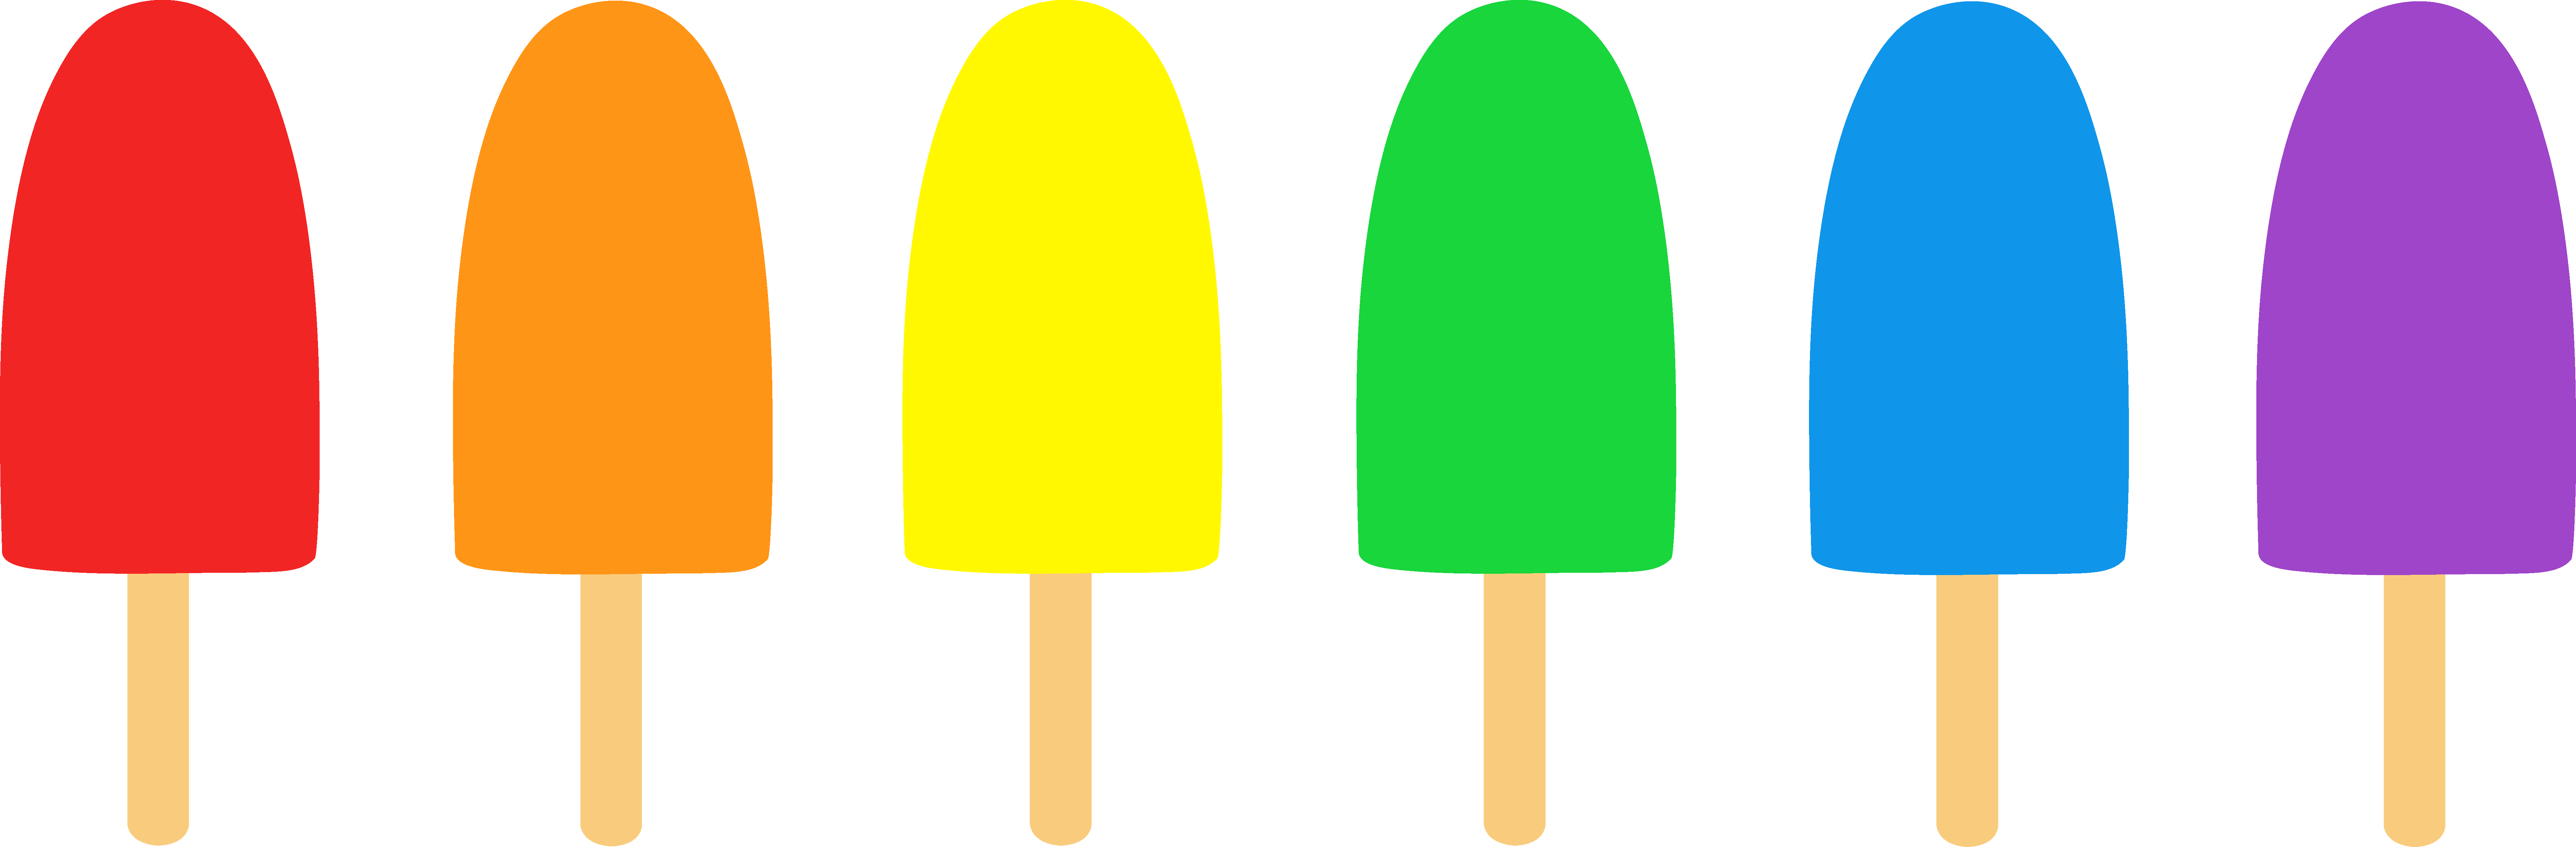 Popsicle Clipart.